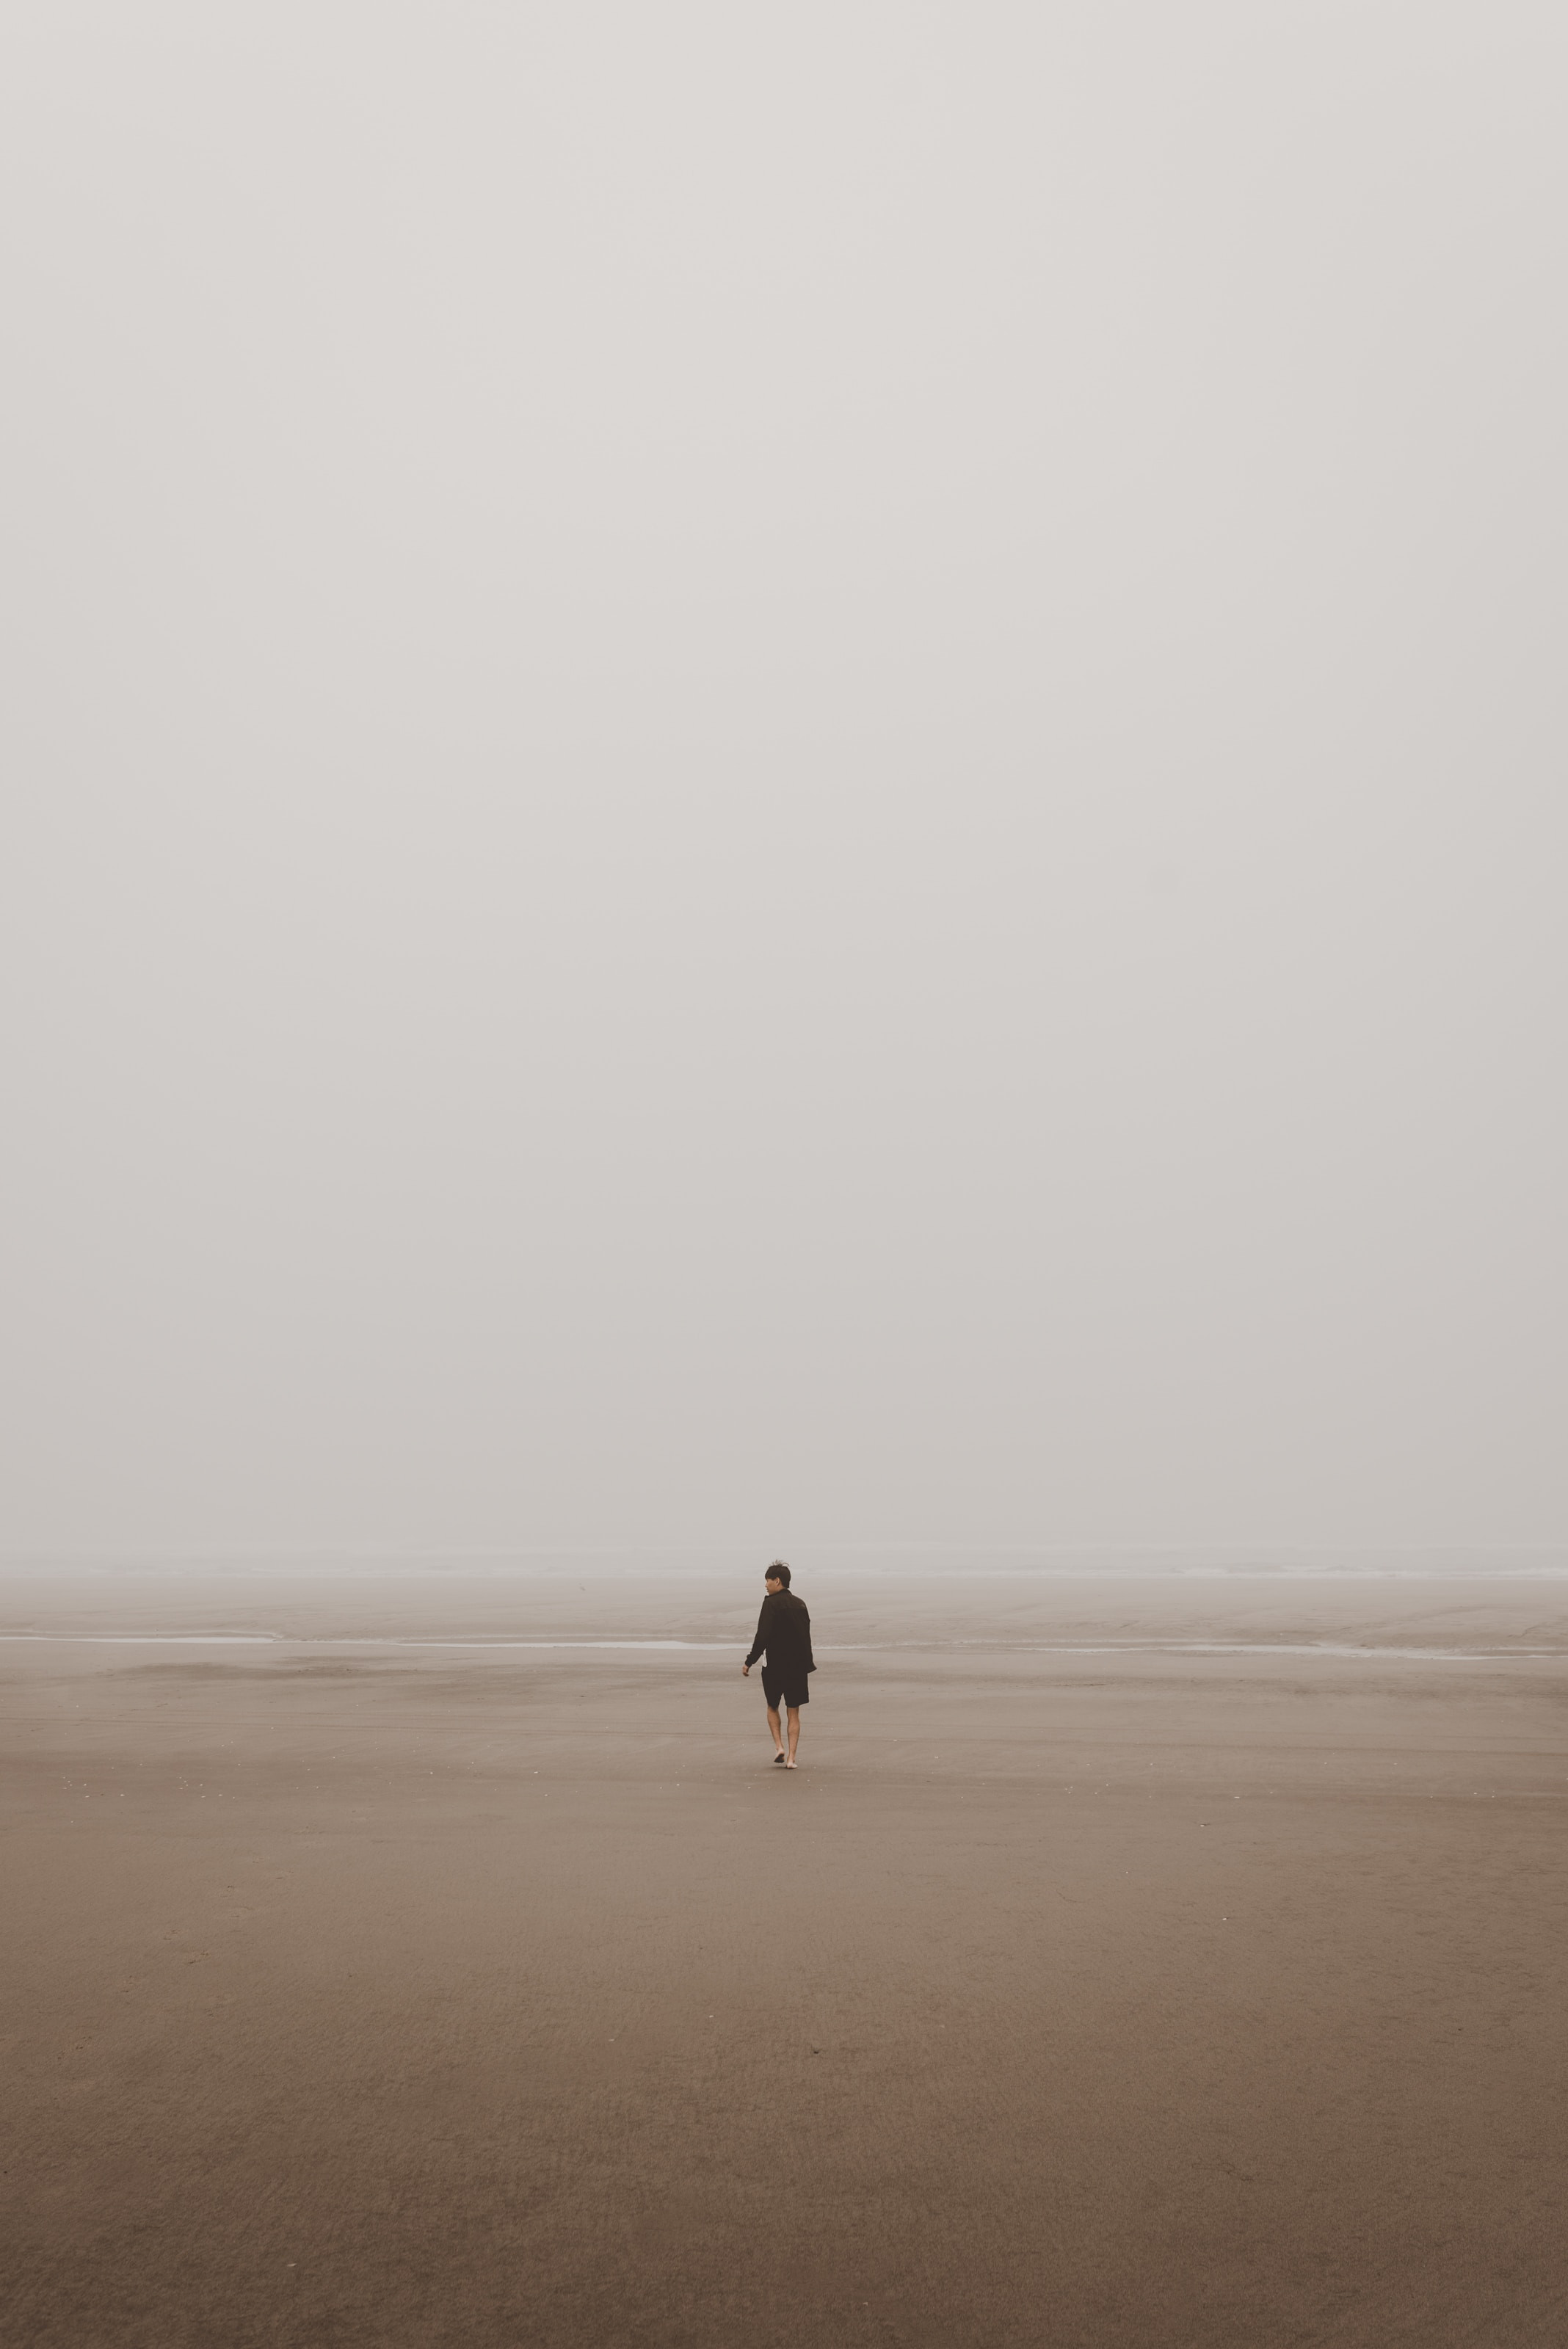 Minimalist lifestyle article. Image of person walking on a beach.jpg